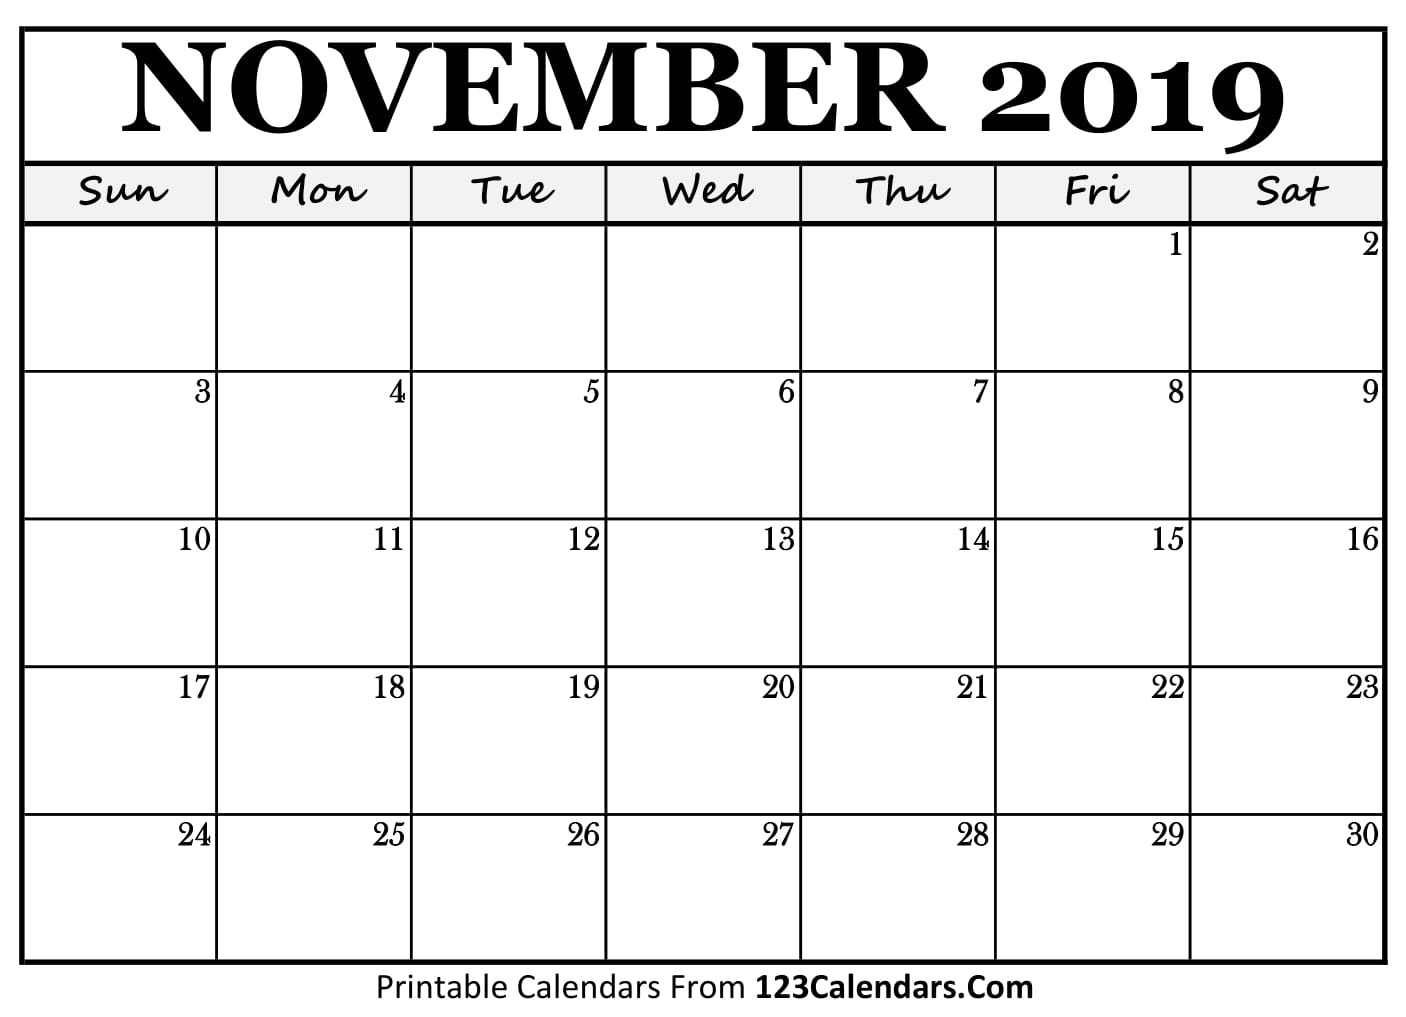 November 2019 Calendar Blank Easily Printable 123calendars